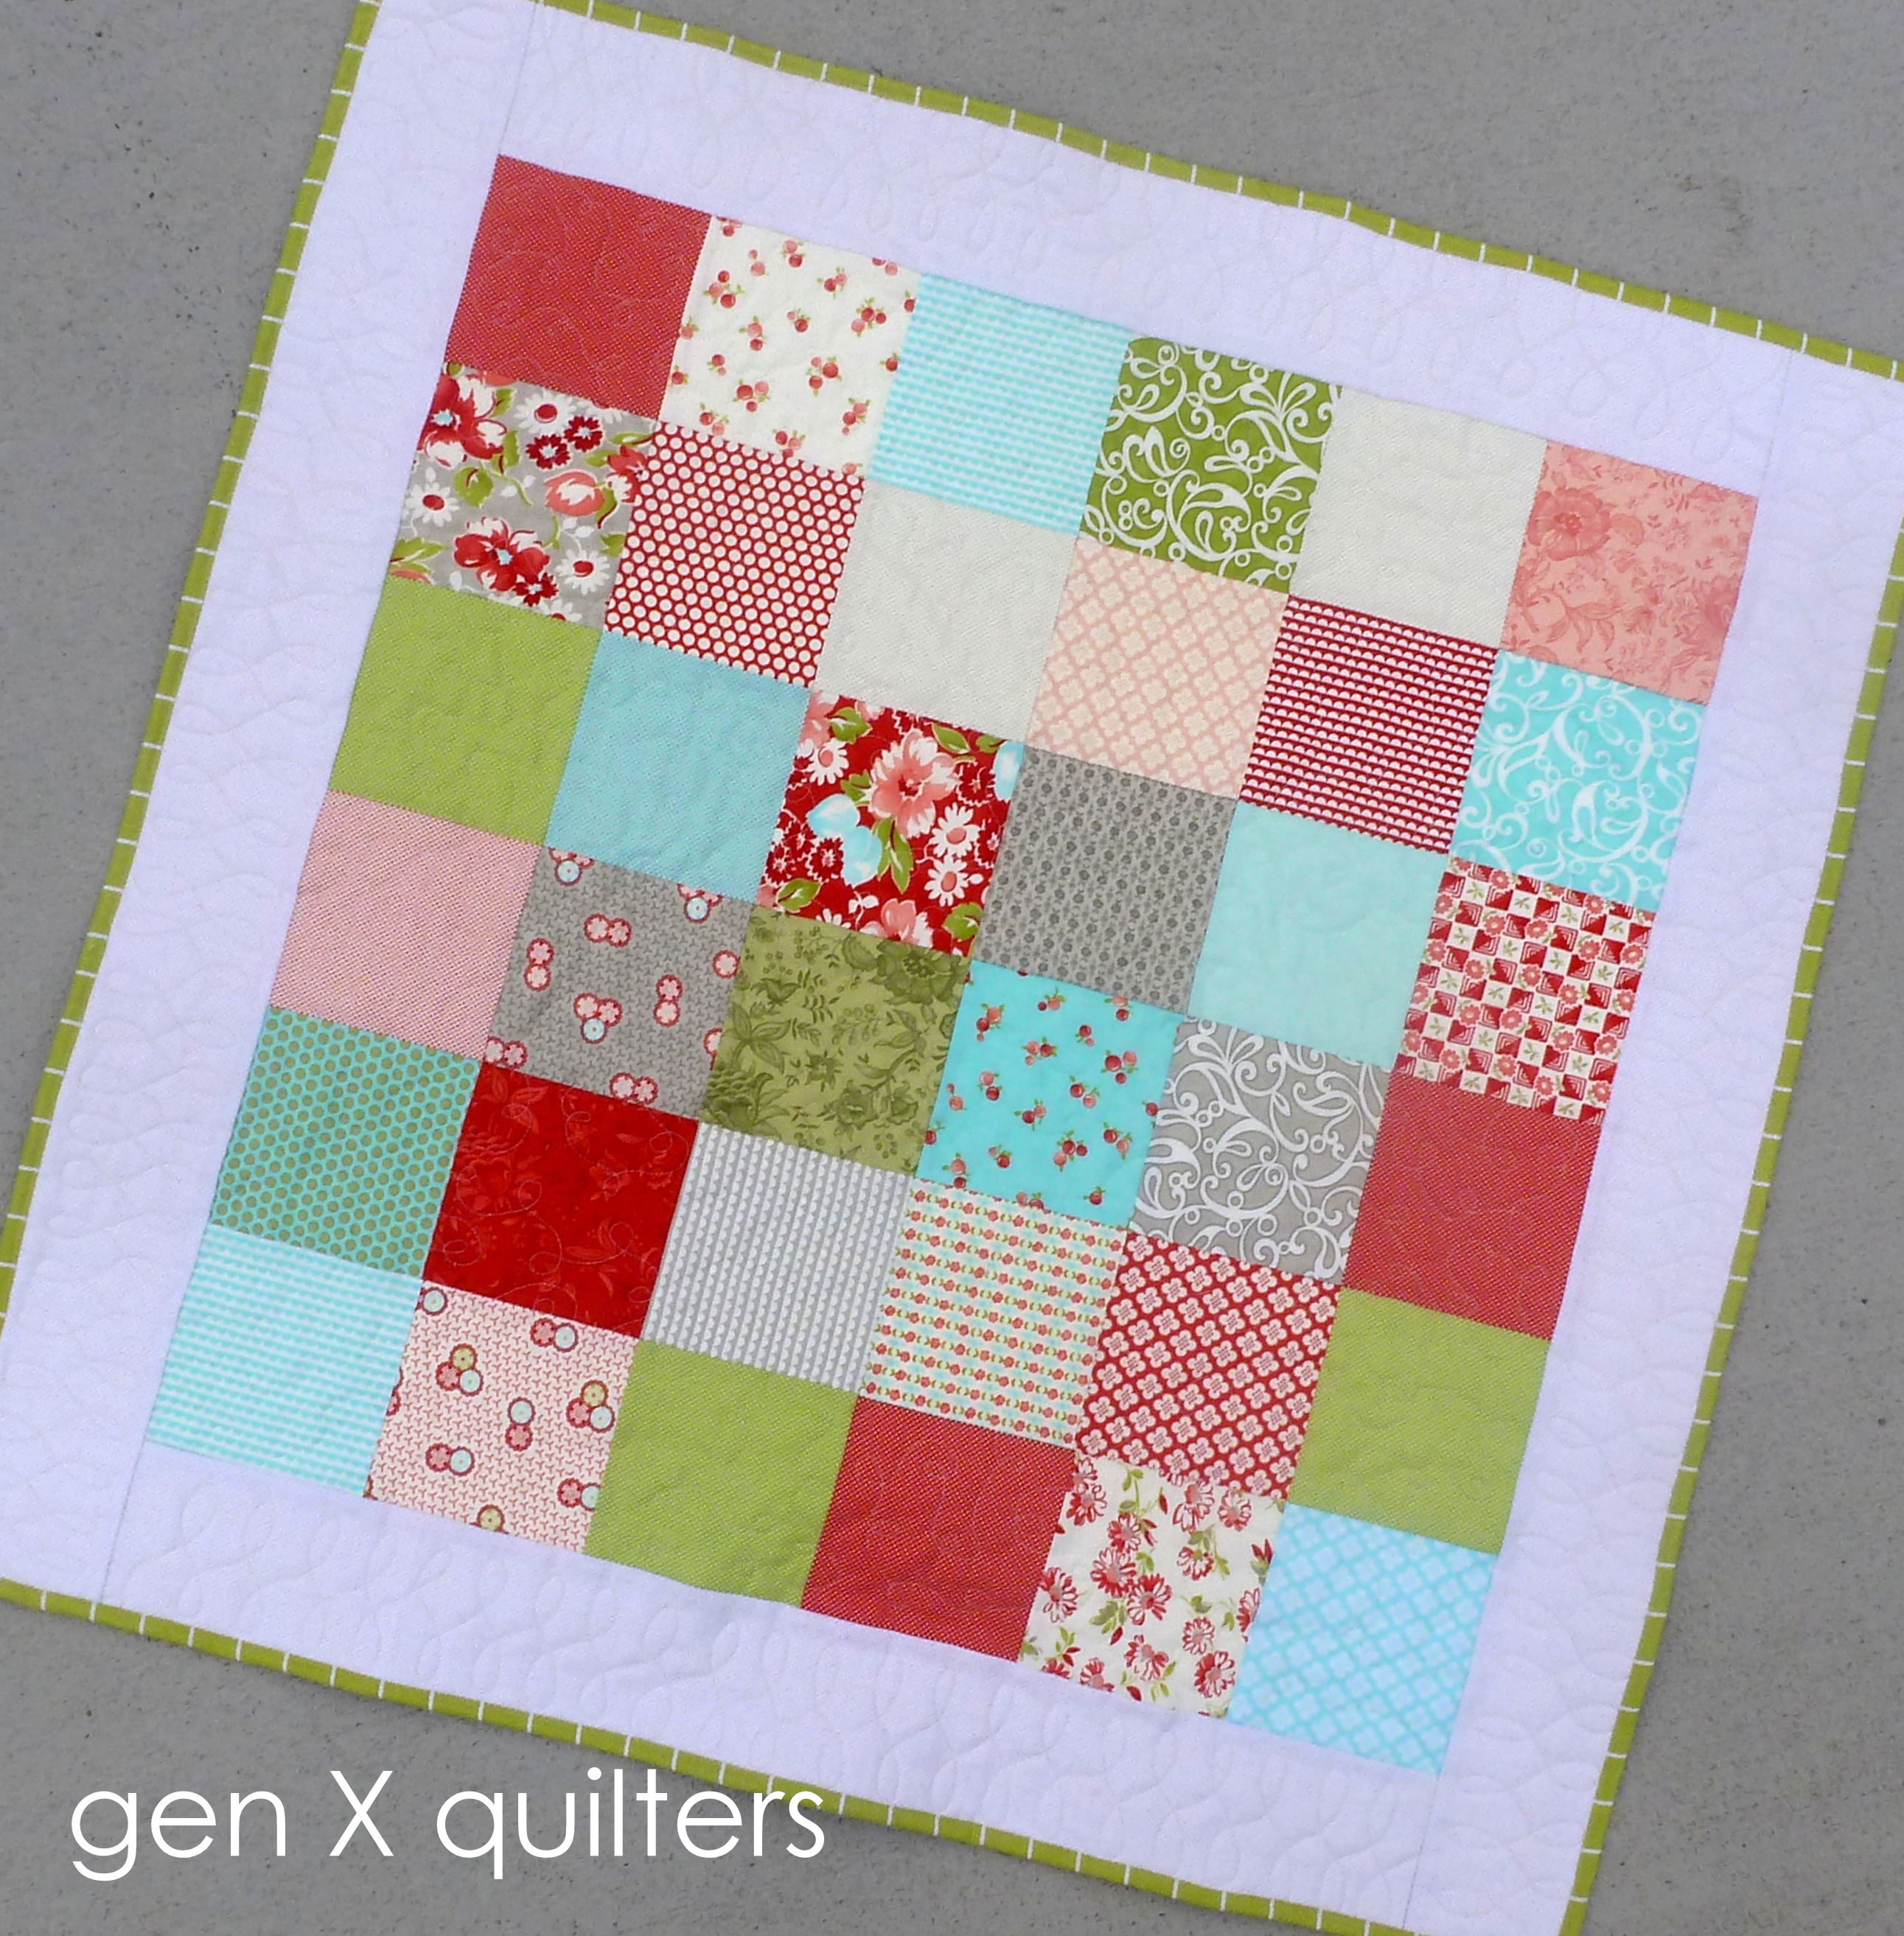 GenXQuilters: Modern Traditional Quilting, Block of the Month ... : patchwork quilt books for beginners - Adamdwight.com